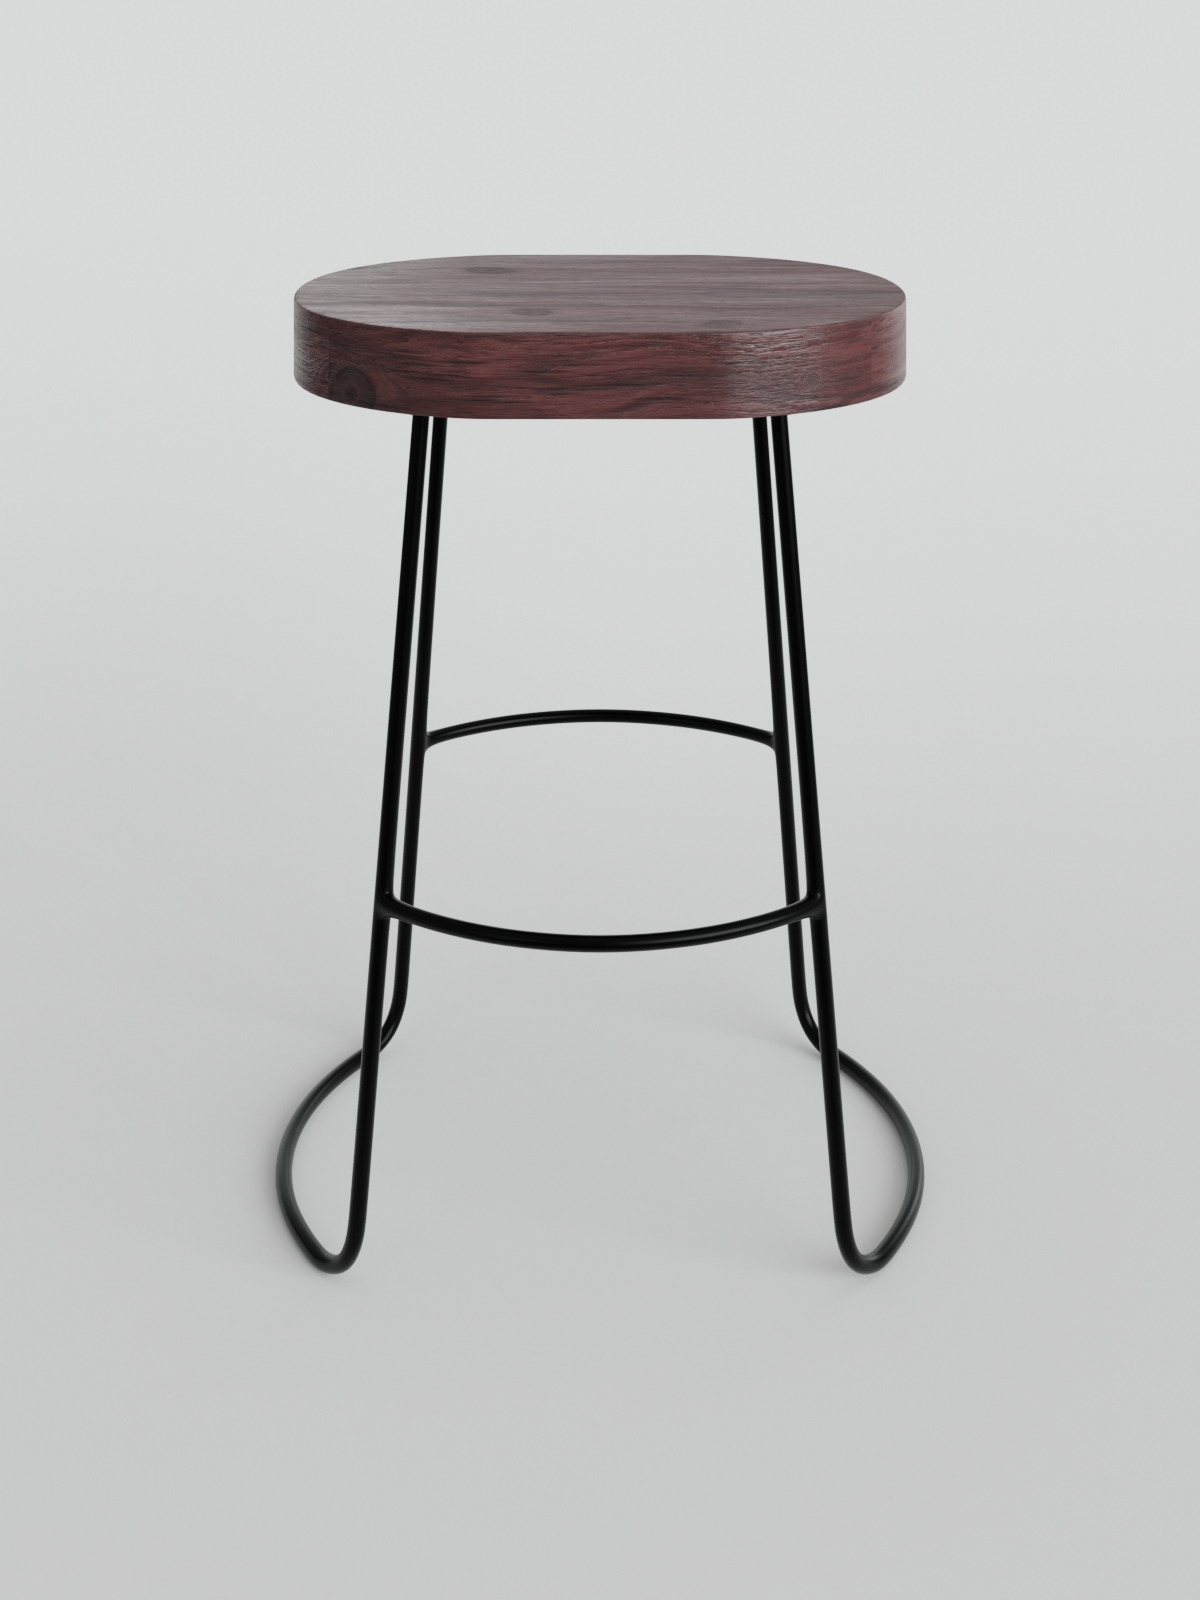 Fantastic Remy Metal And Wood Counter Stool Uwap Interior Chair Design Uwaporg